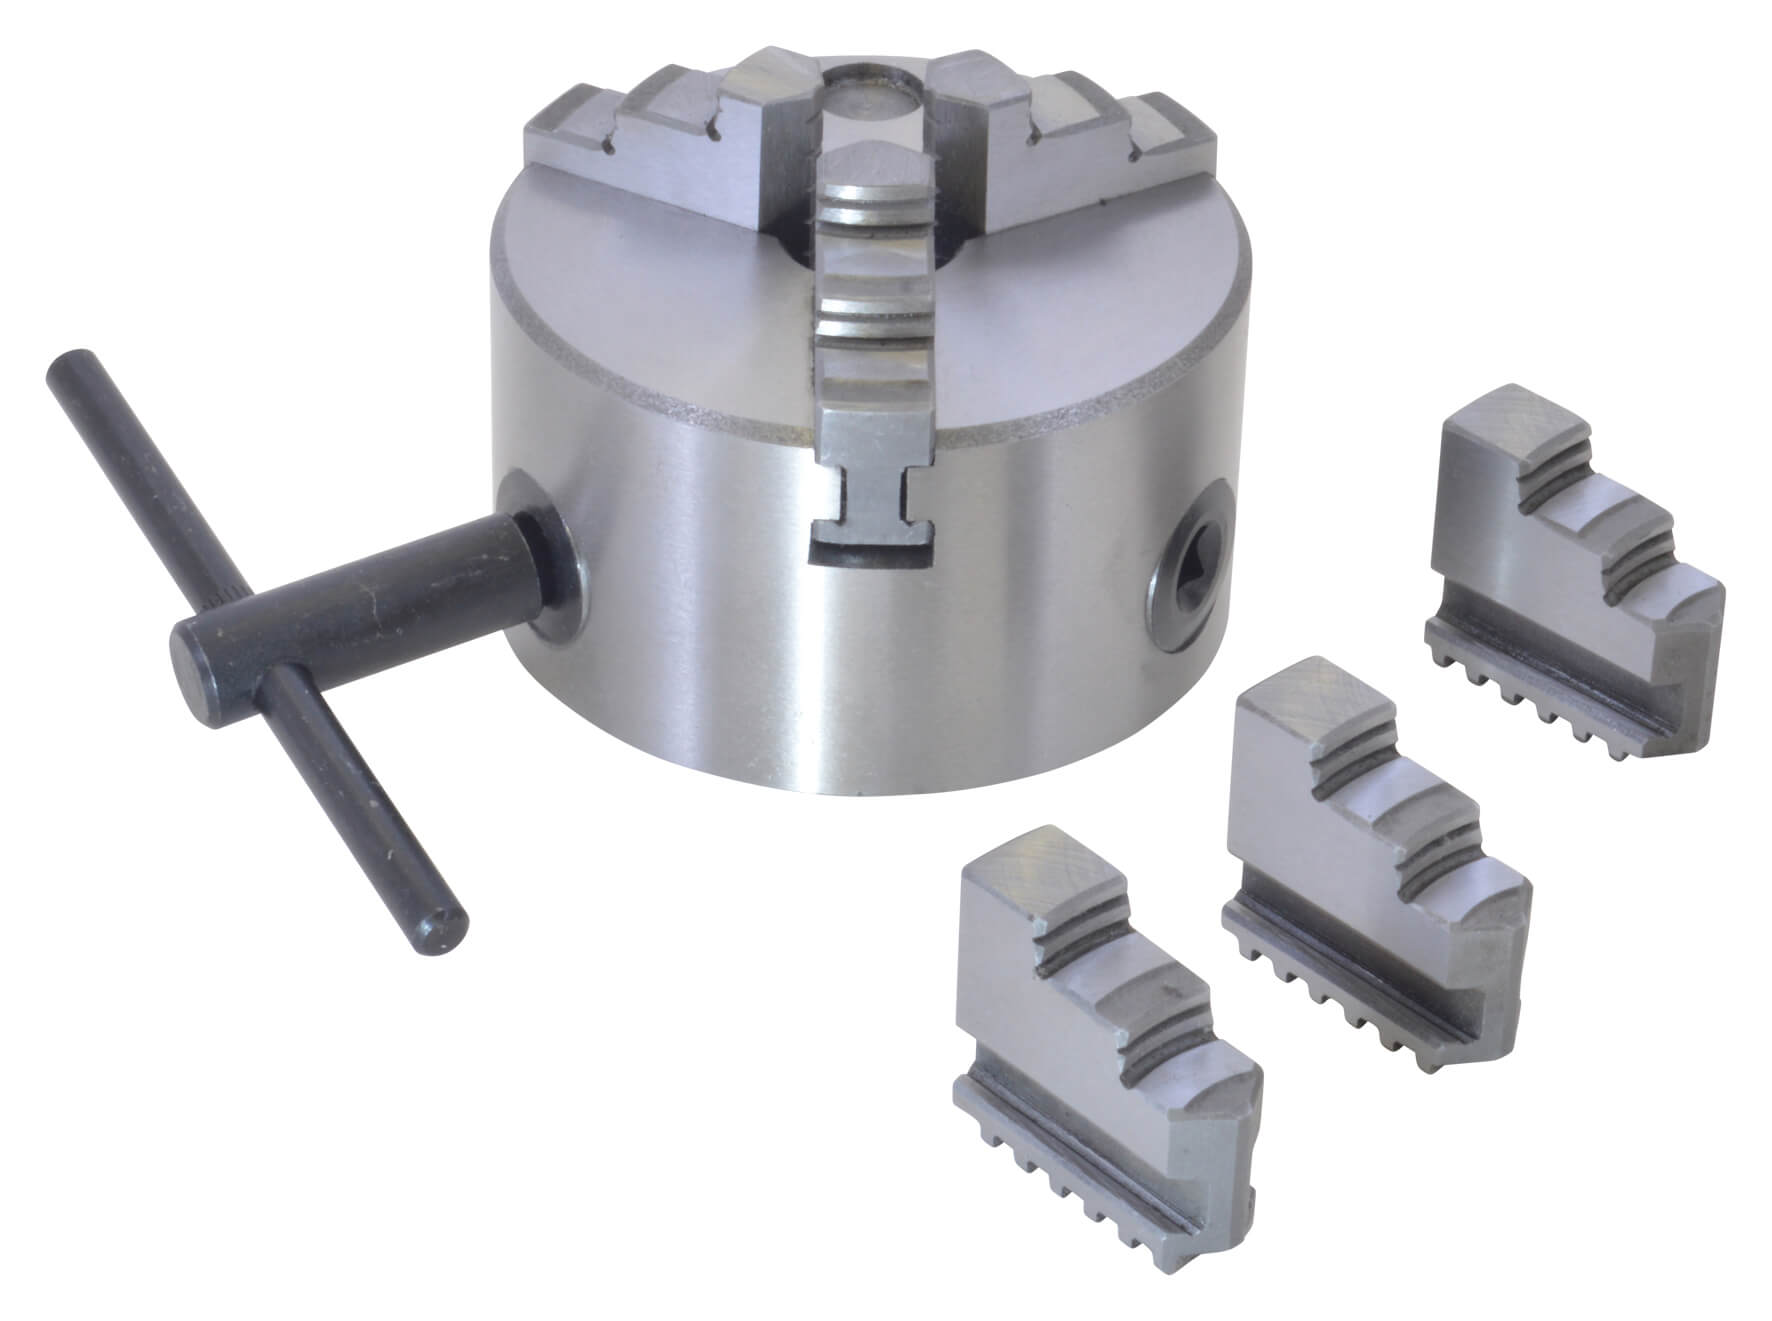 Turntech 3 Jaw Chuck - 100mm